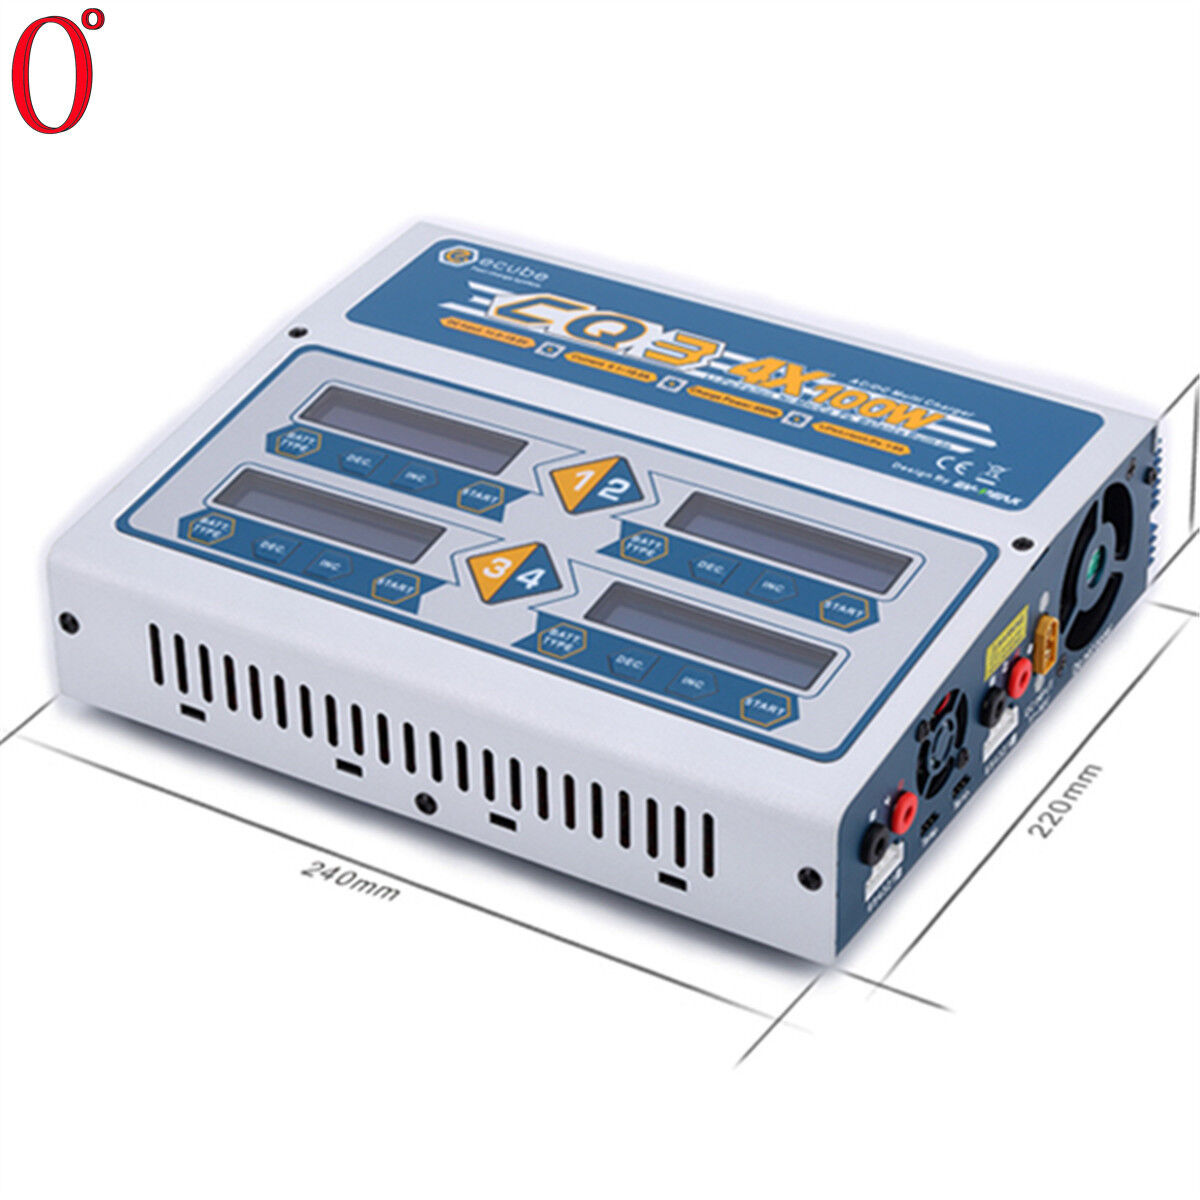 EV-PEAK  CQ3 4CH AC Input 110v -240V balance charger discharger for 1-6S Battery  a buon mercato